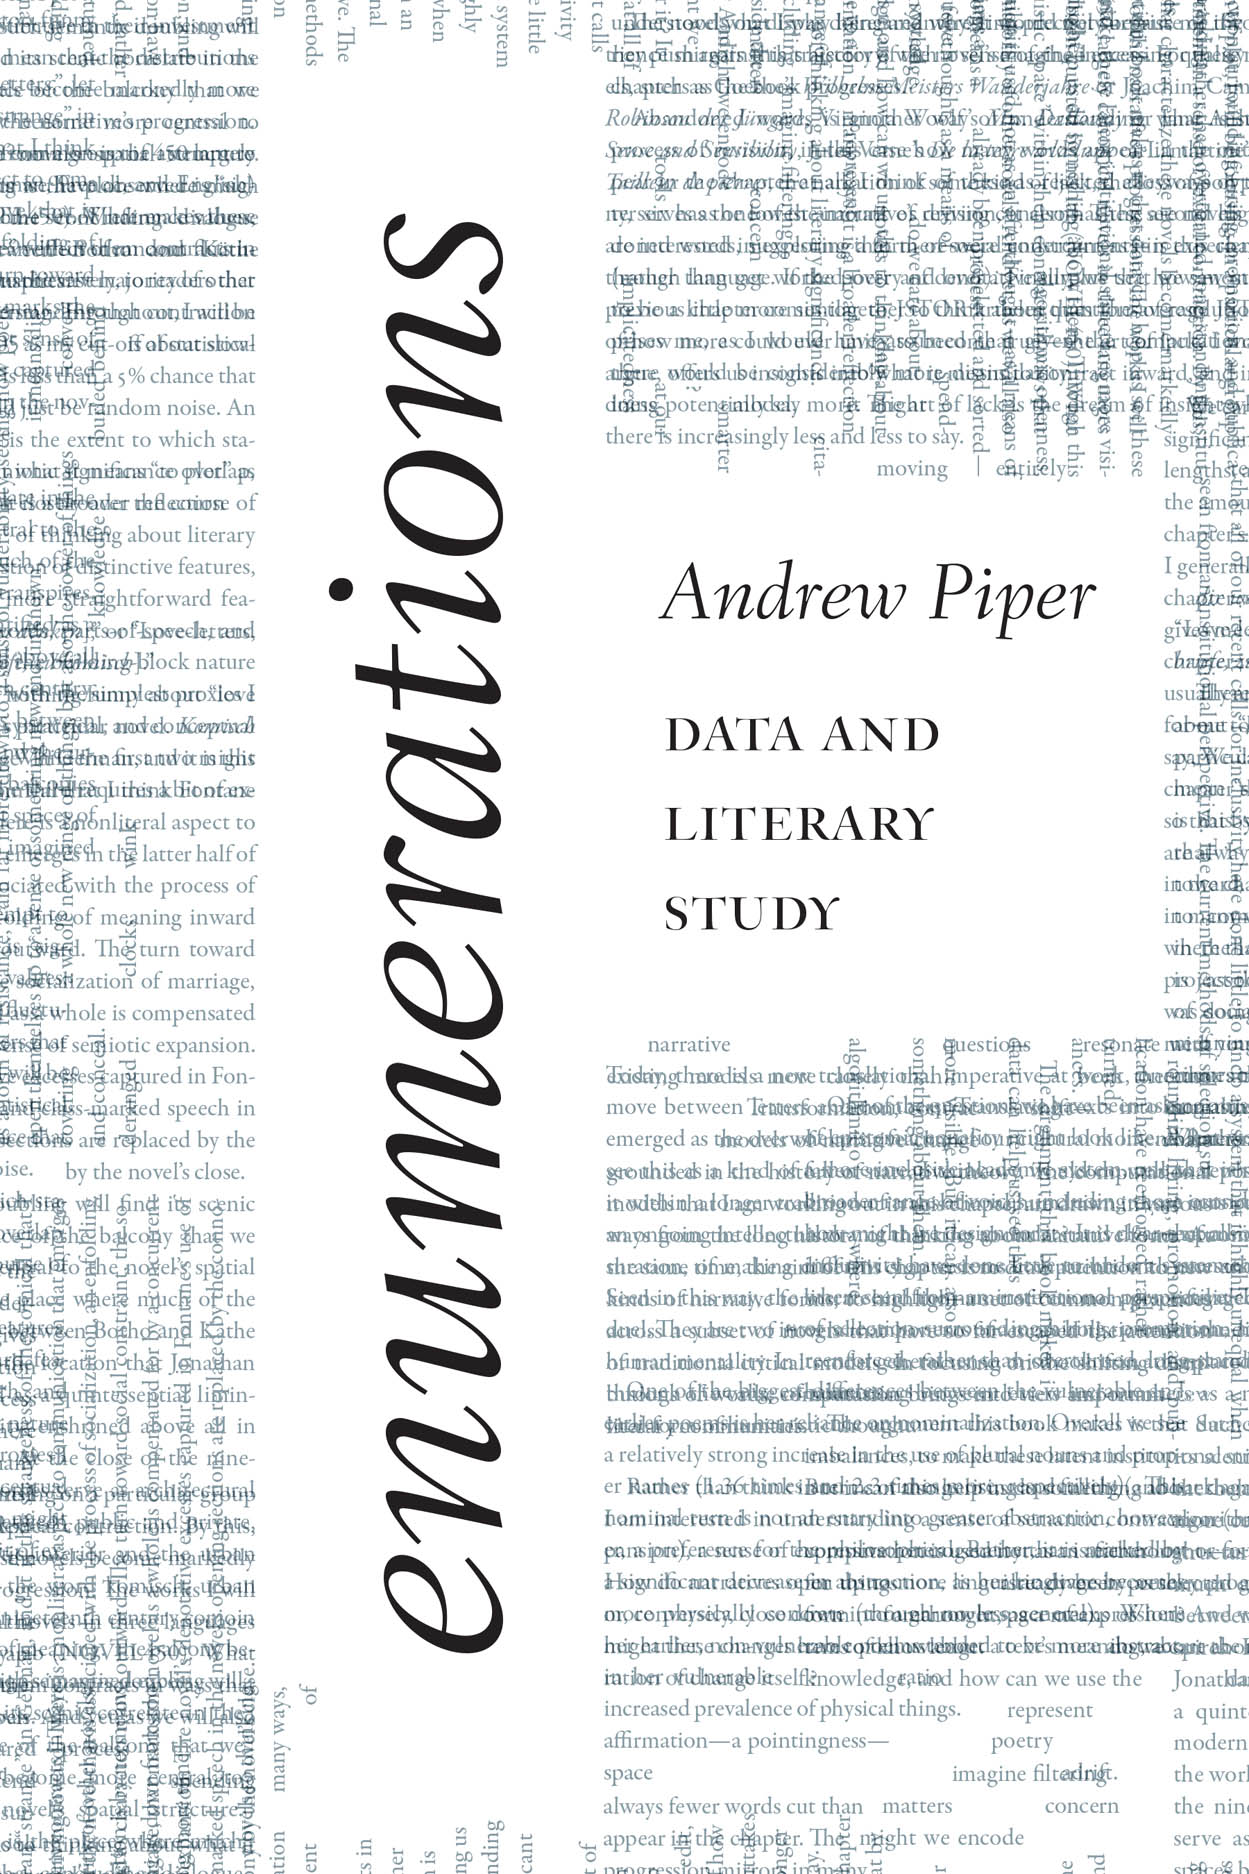 Enumerations: Data and Literary Study